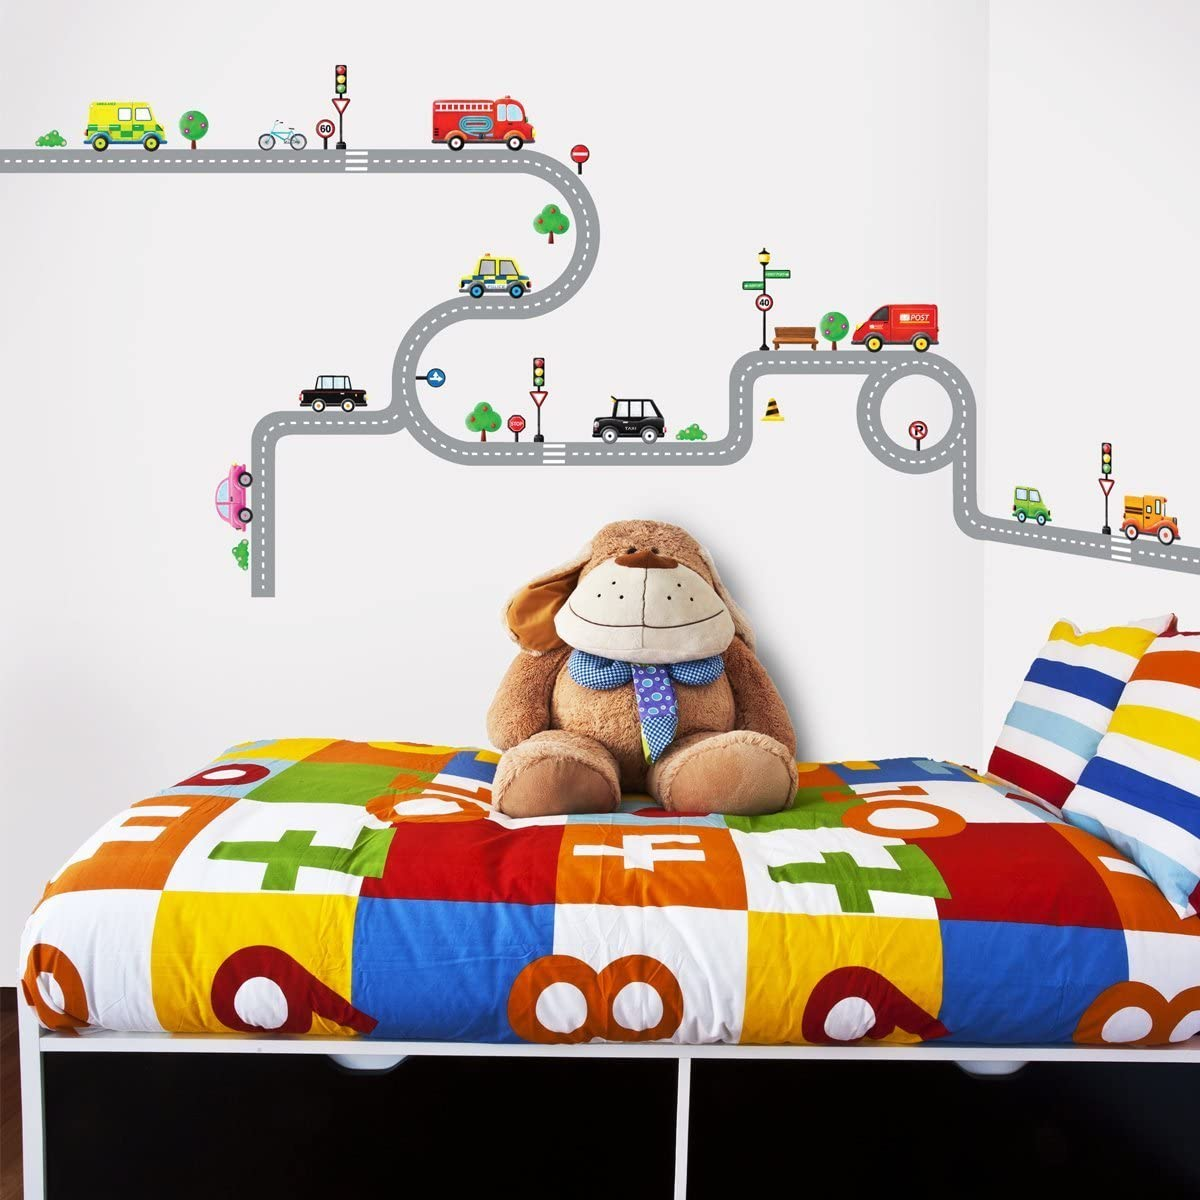 DECOWALL DW-1204 10 Routes et Transports Autocollants Muraux Mural Stickers Chambre Enfants B/éb/é Garderie Salon